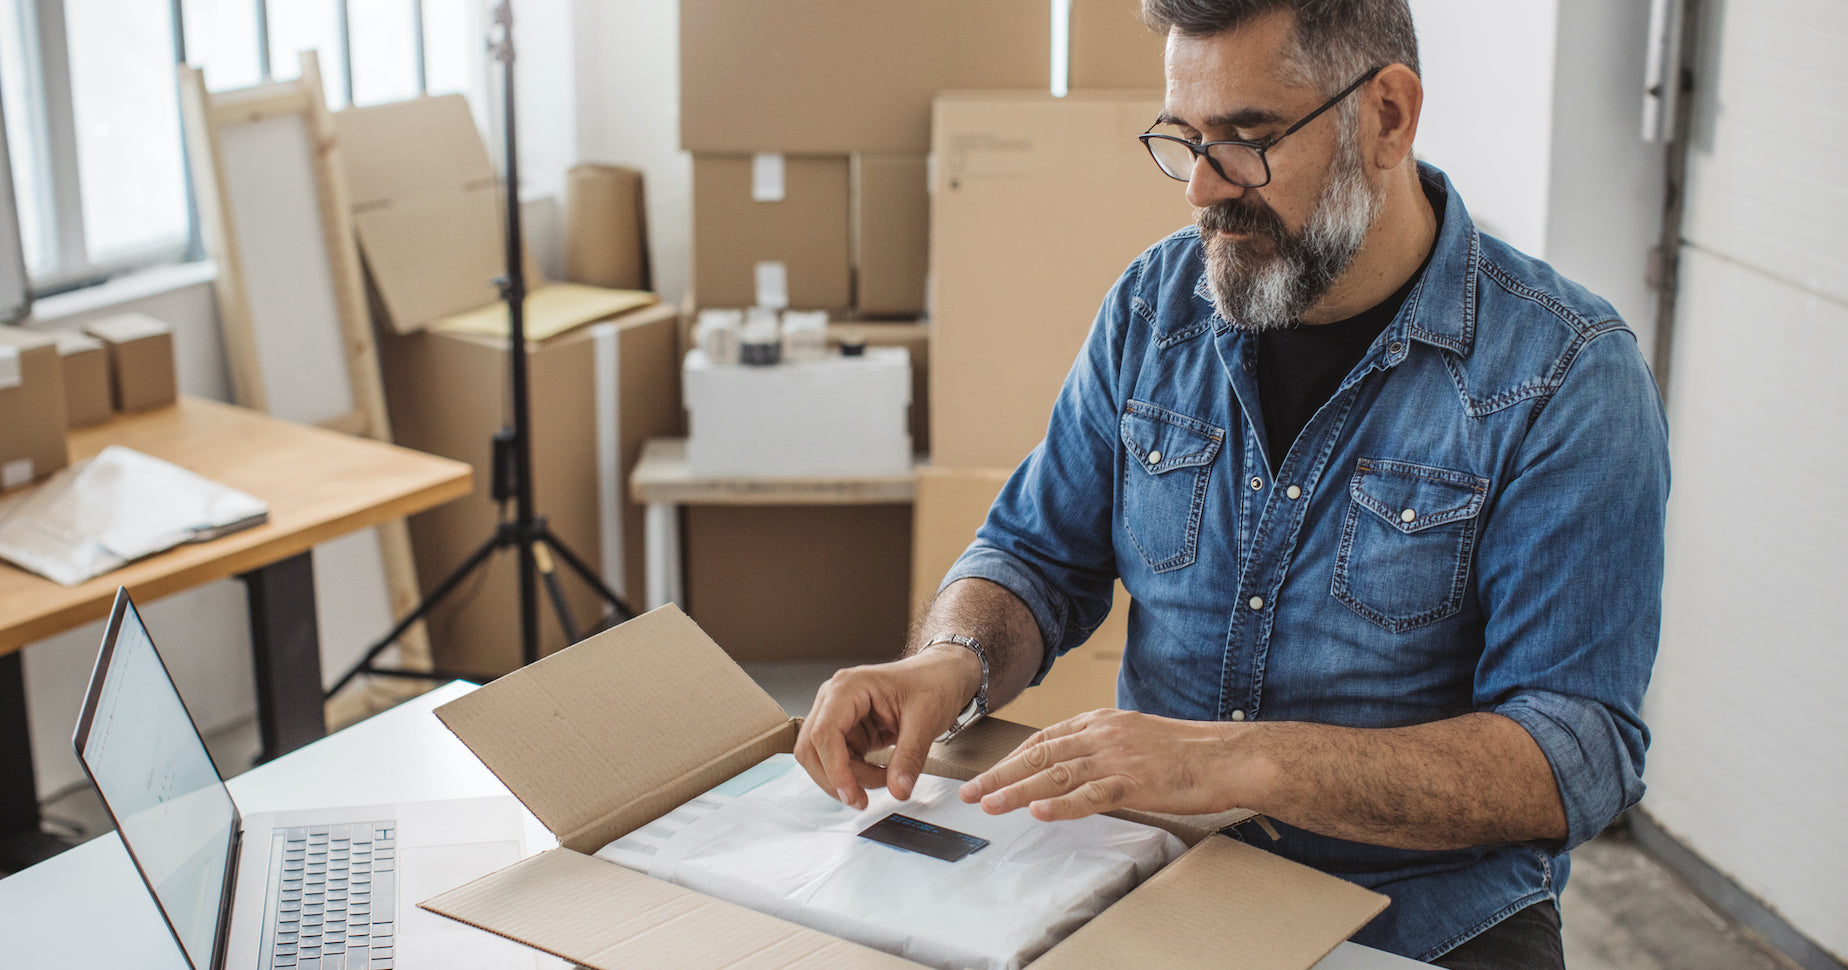 Prepare your business for the holidays and shipping delays